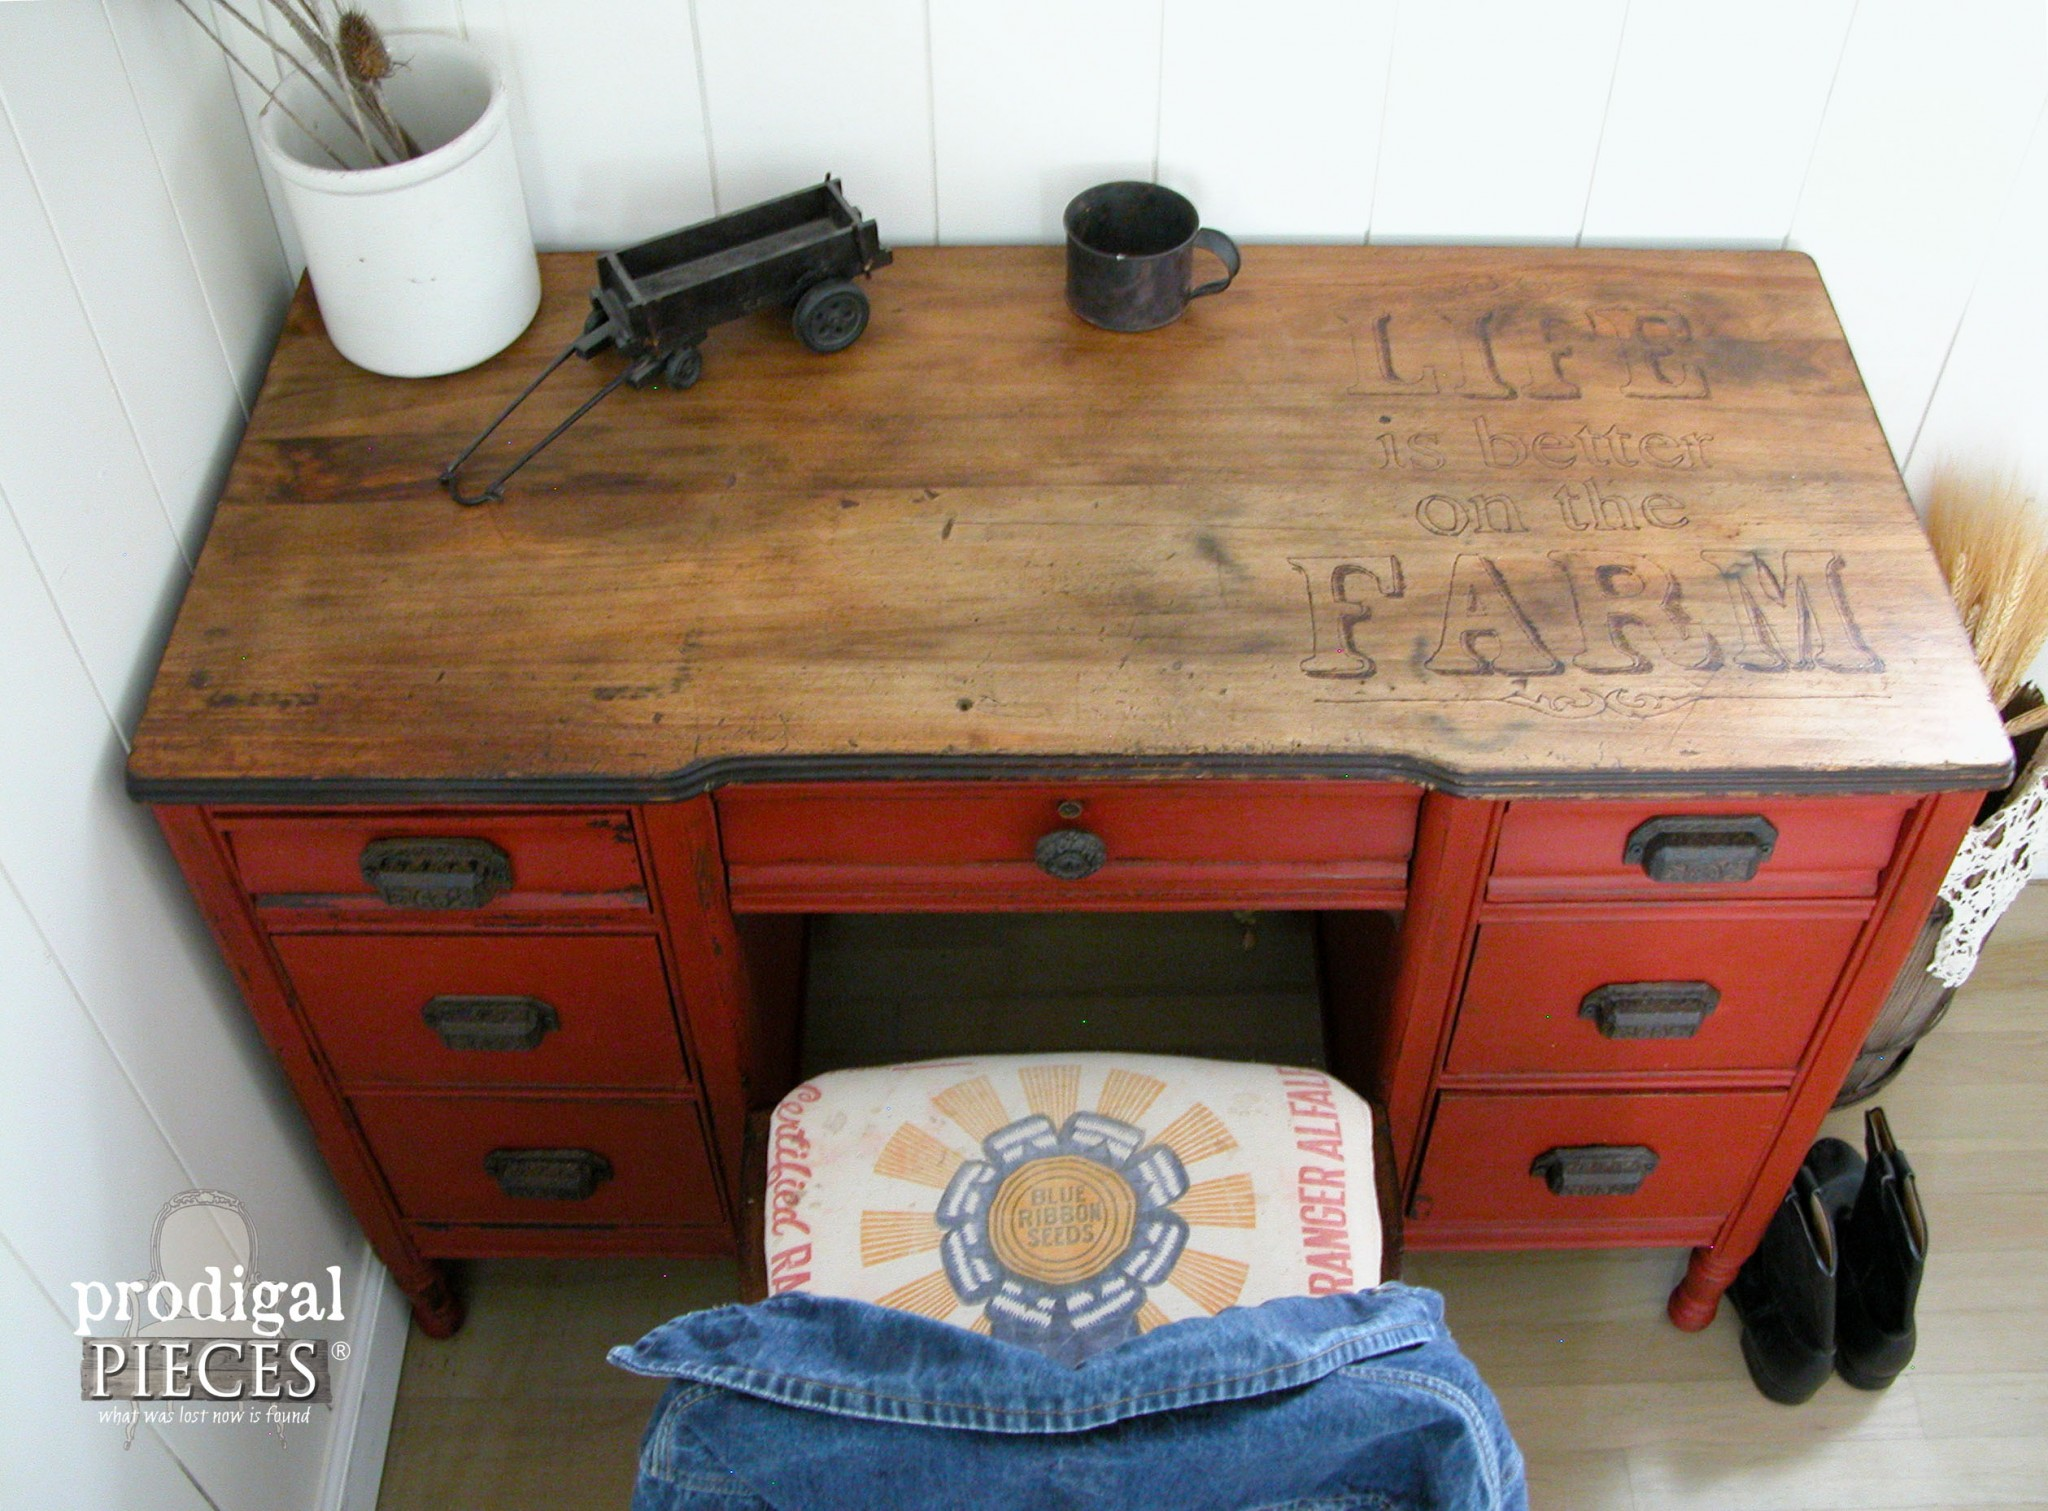 Rustic Farmhouse Desk with Woodburned Top by Prodigal Pieces | www.prodigalpieces.com